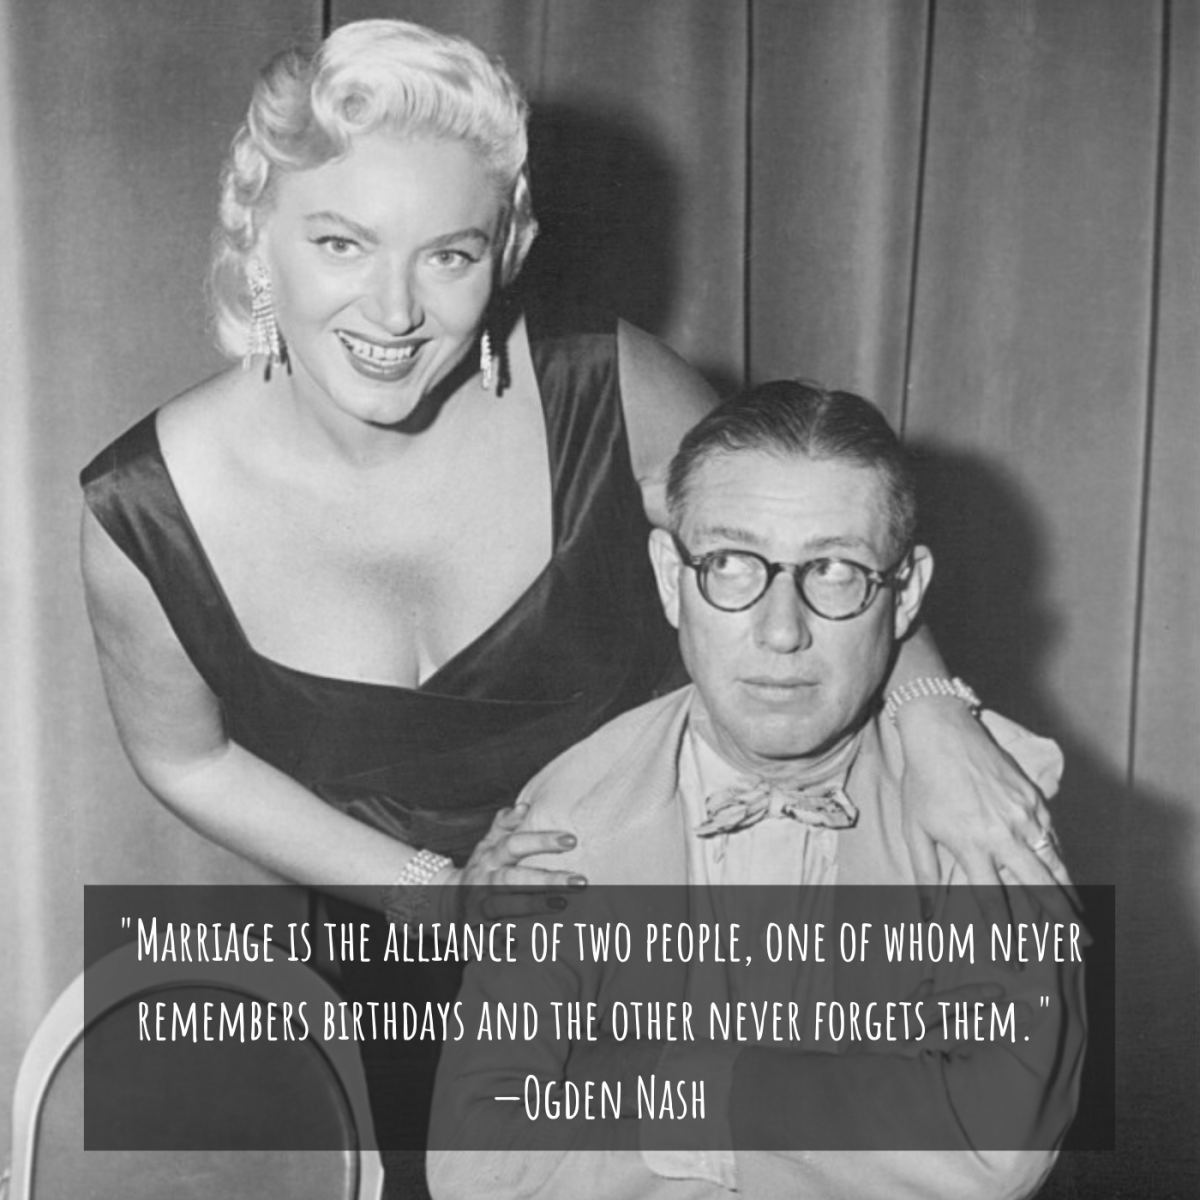 """Marriage is the alliance of two people, one of whom never remembers birthdays and the other never forgets them."" —Ogden Nash"